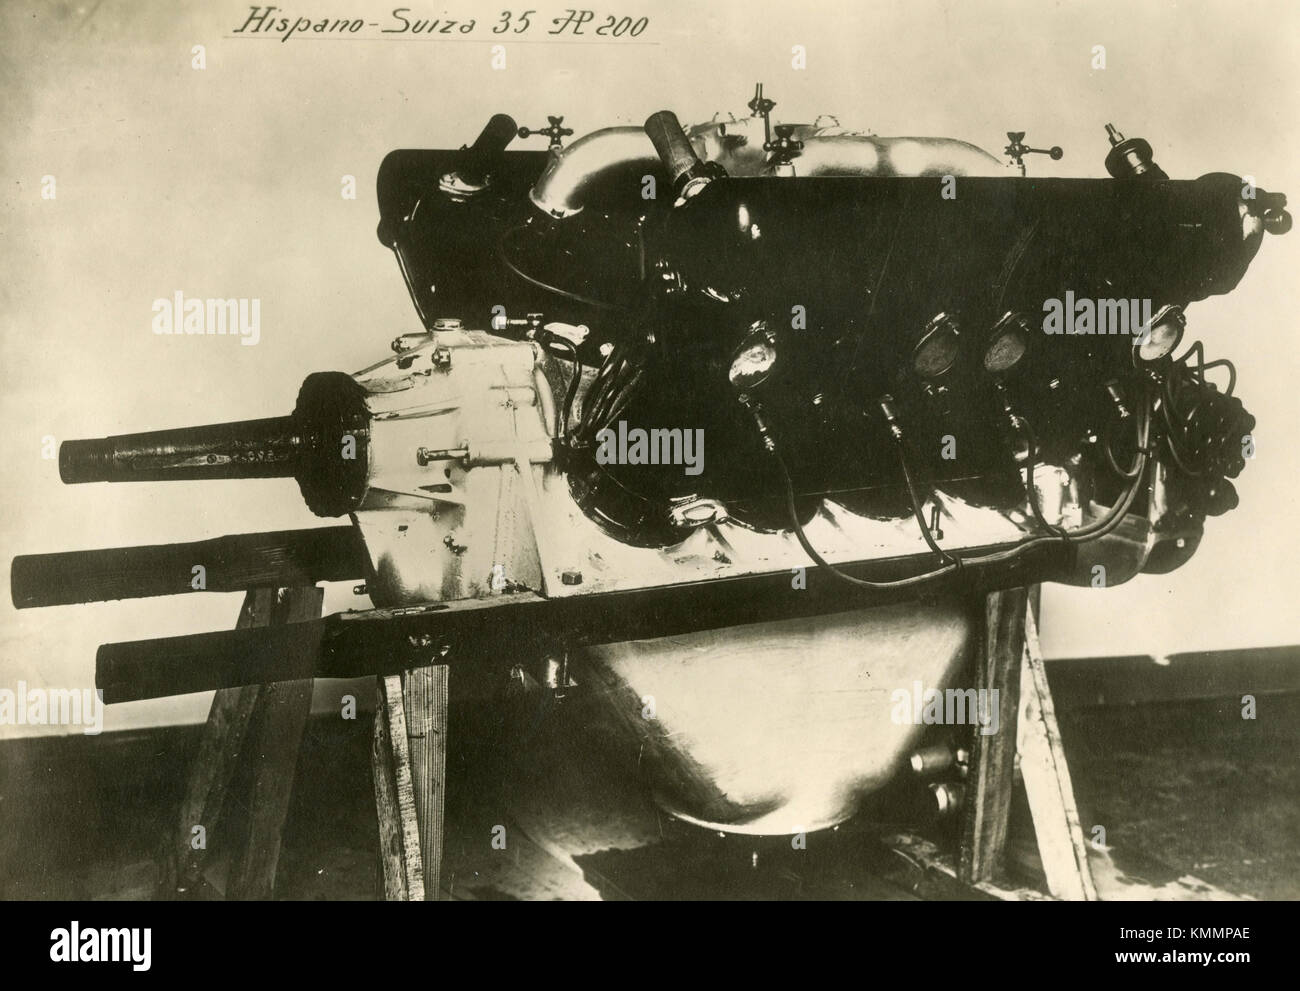 Hispano Suiza 35 aircraft engine HP 200, back view, France 1920s - Stock Image